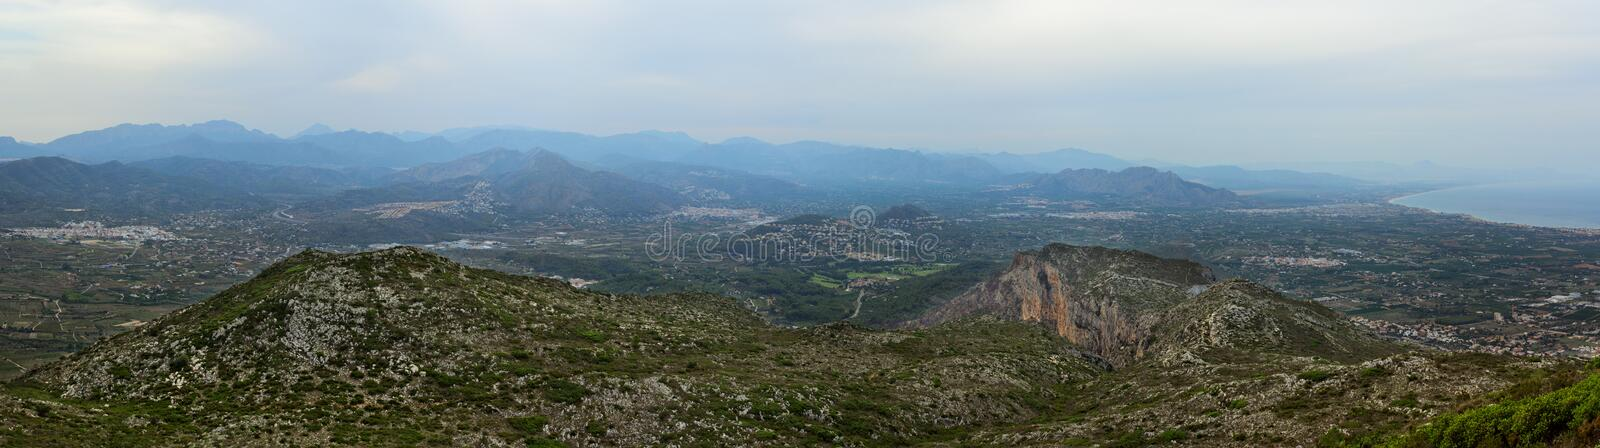 Panoramic view at Montgo. View from the top of Mount Montgo, Denia, Spain royalty free stock image